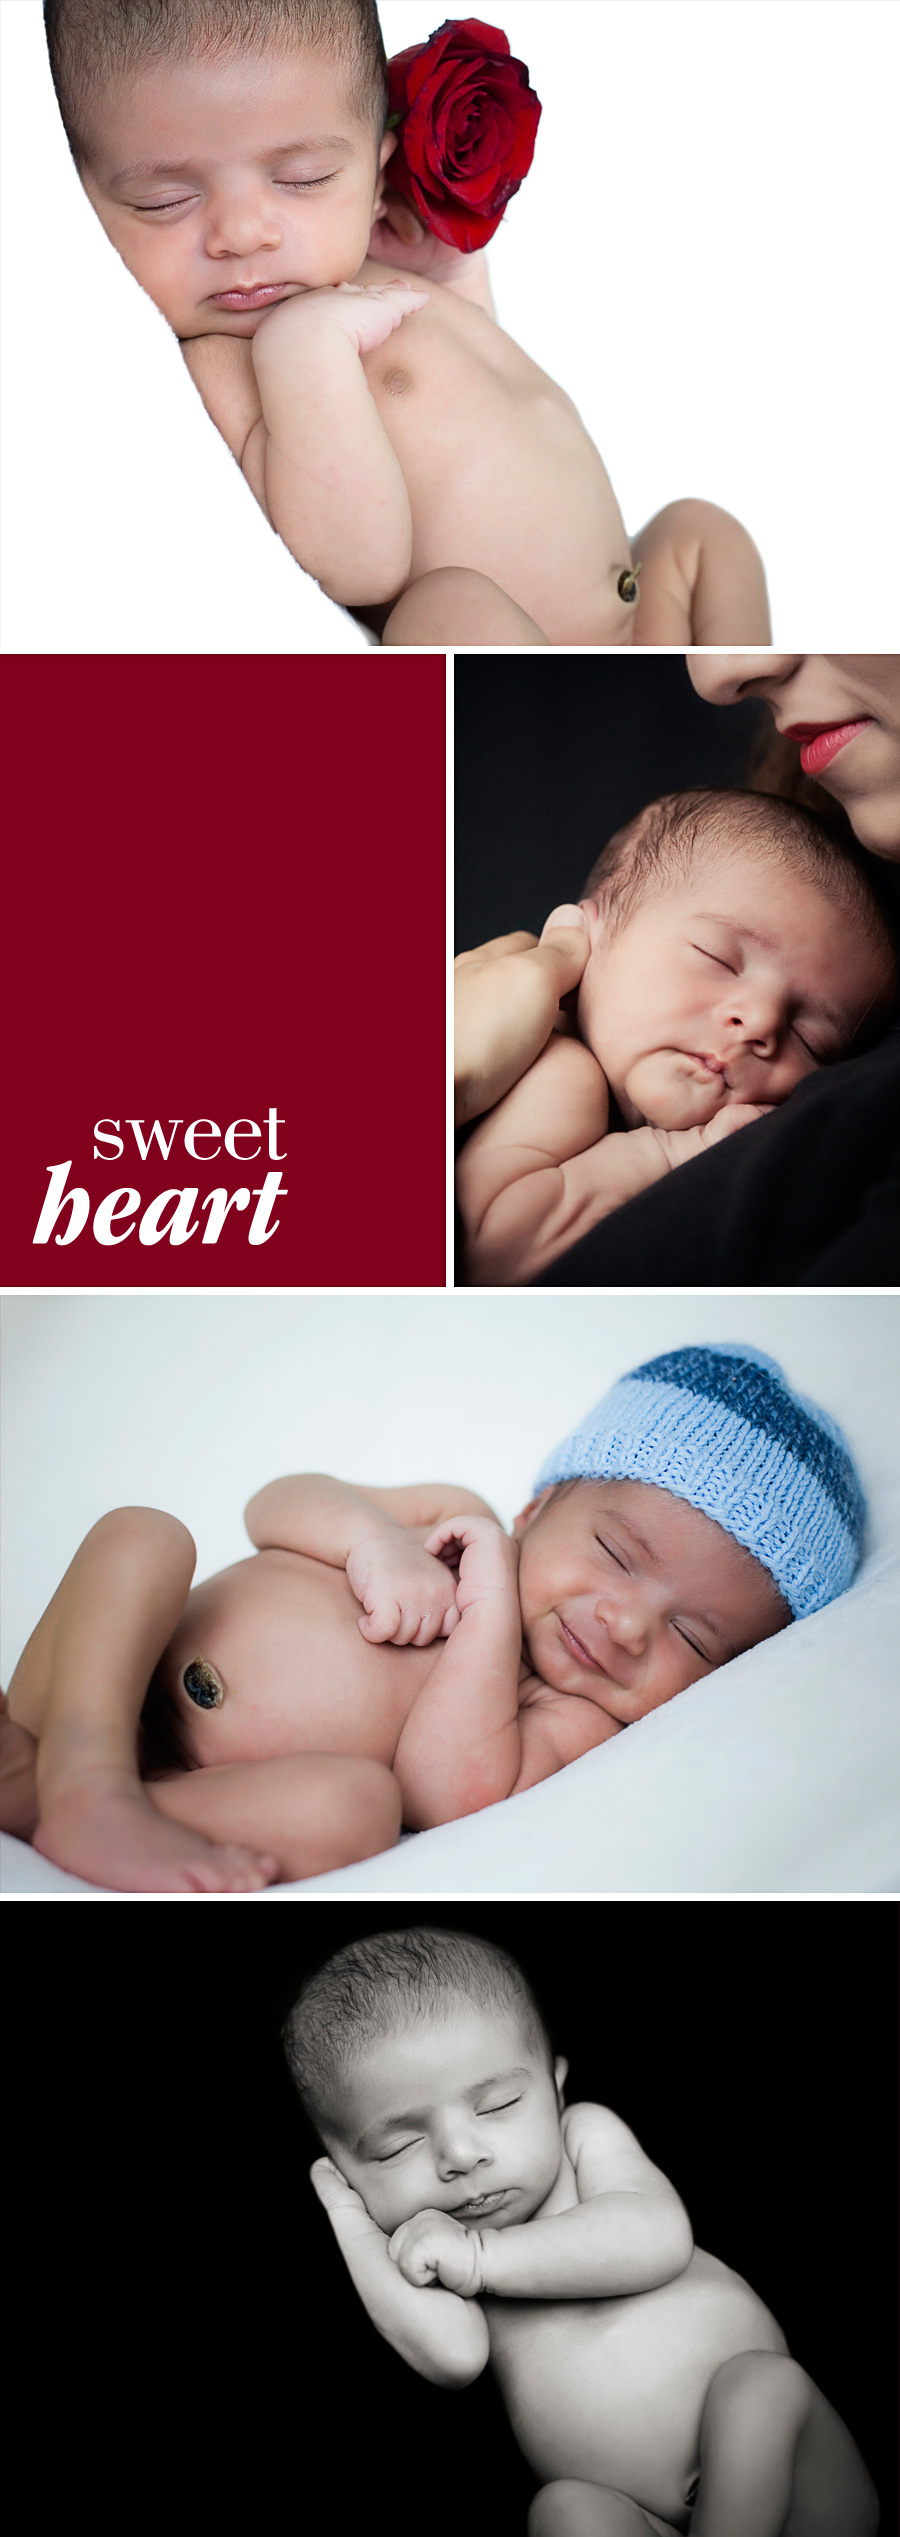 portraits of a beautiful sleeping baby - classic newborn portraits by Orange County photographer Gillian Crane